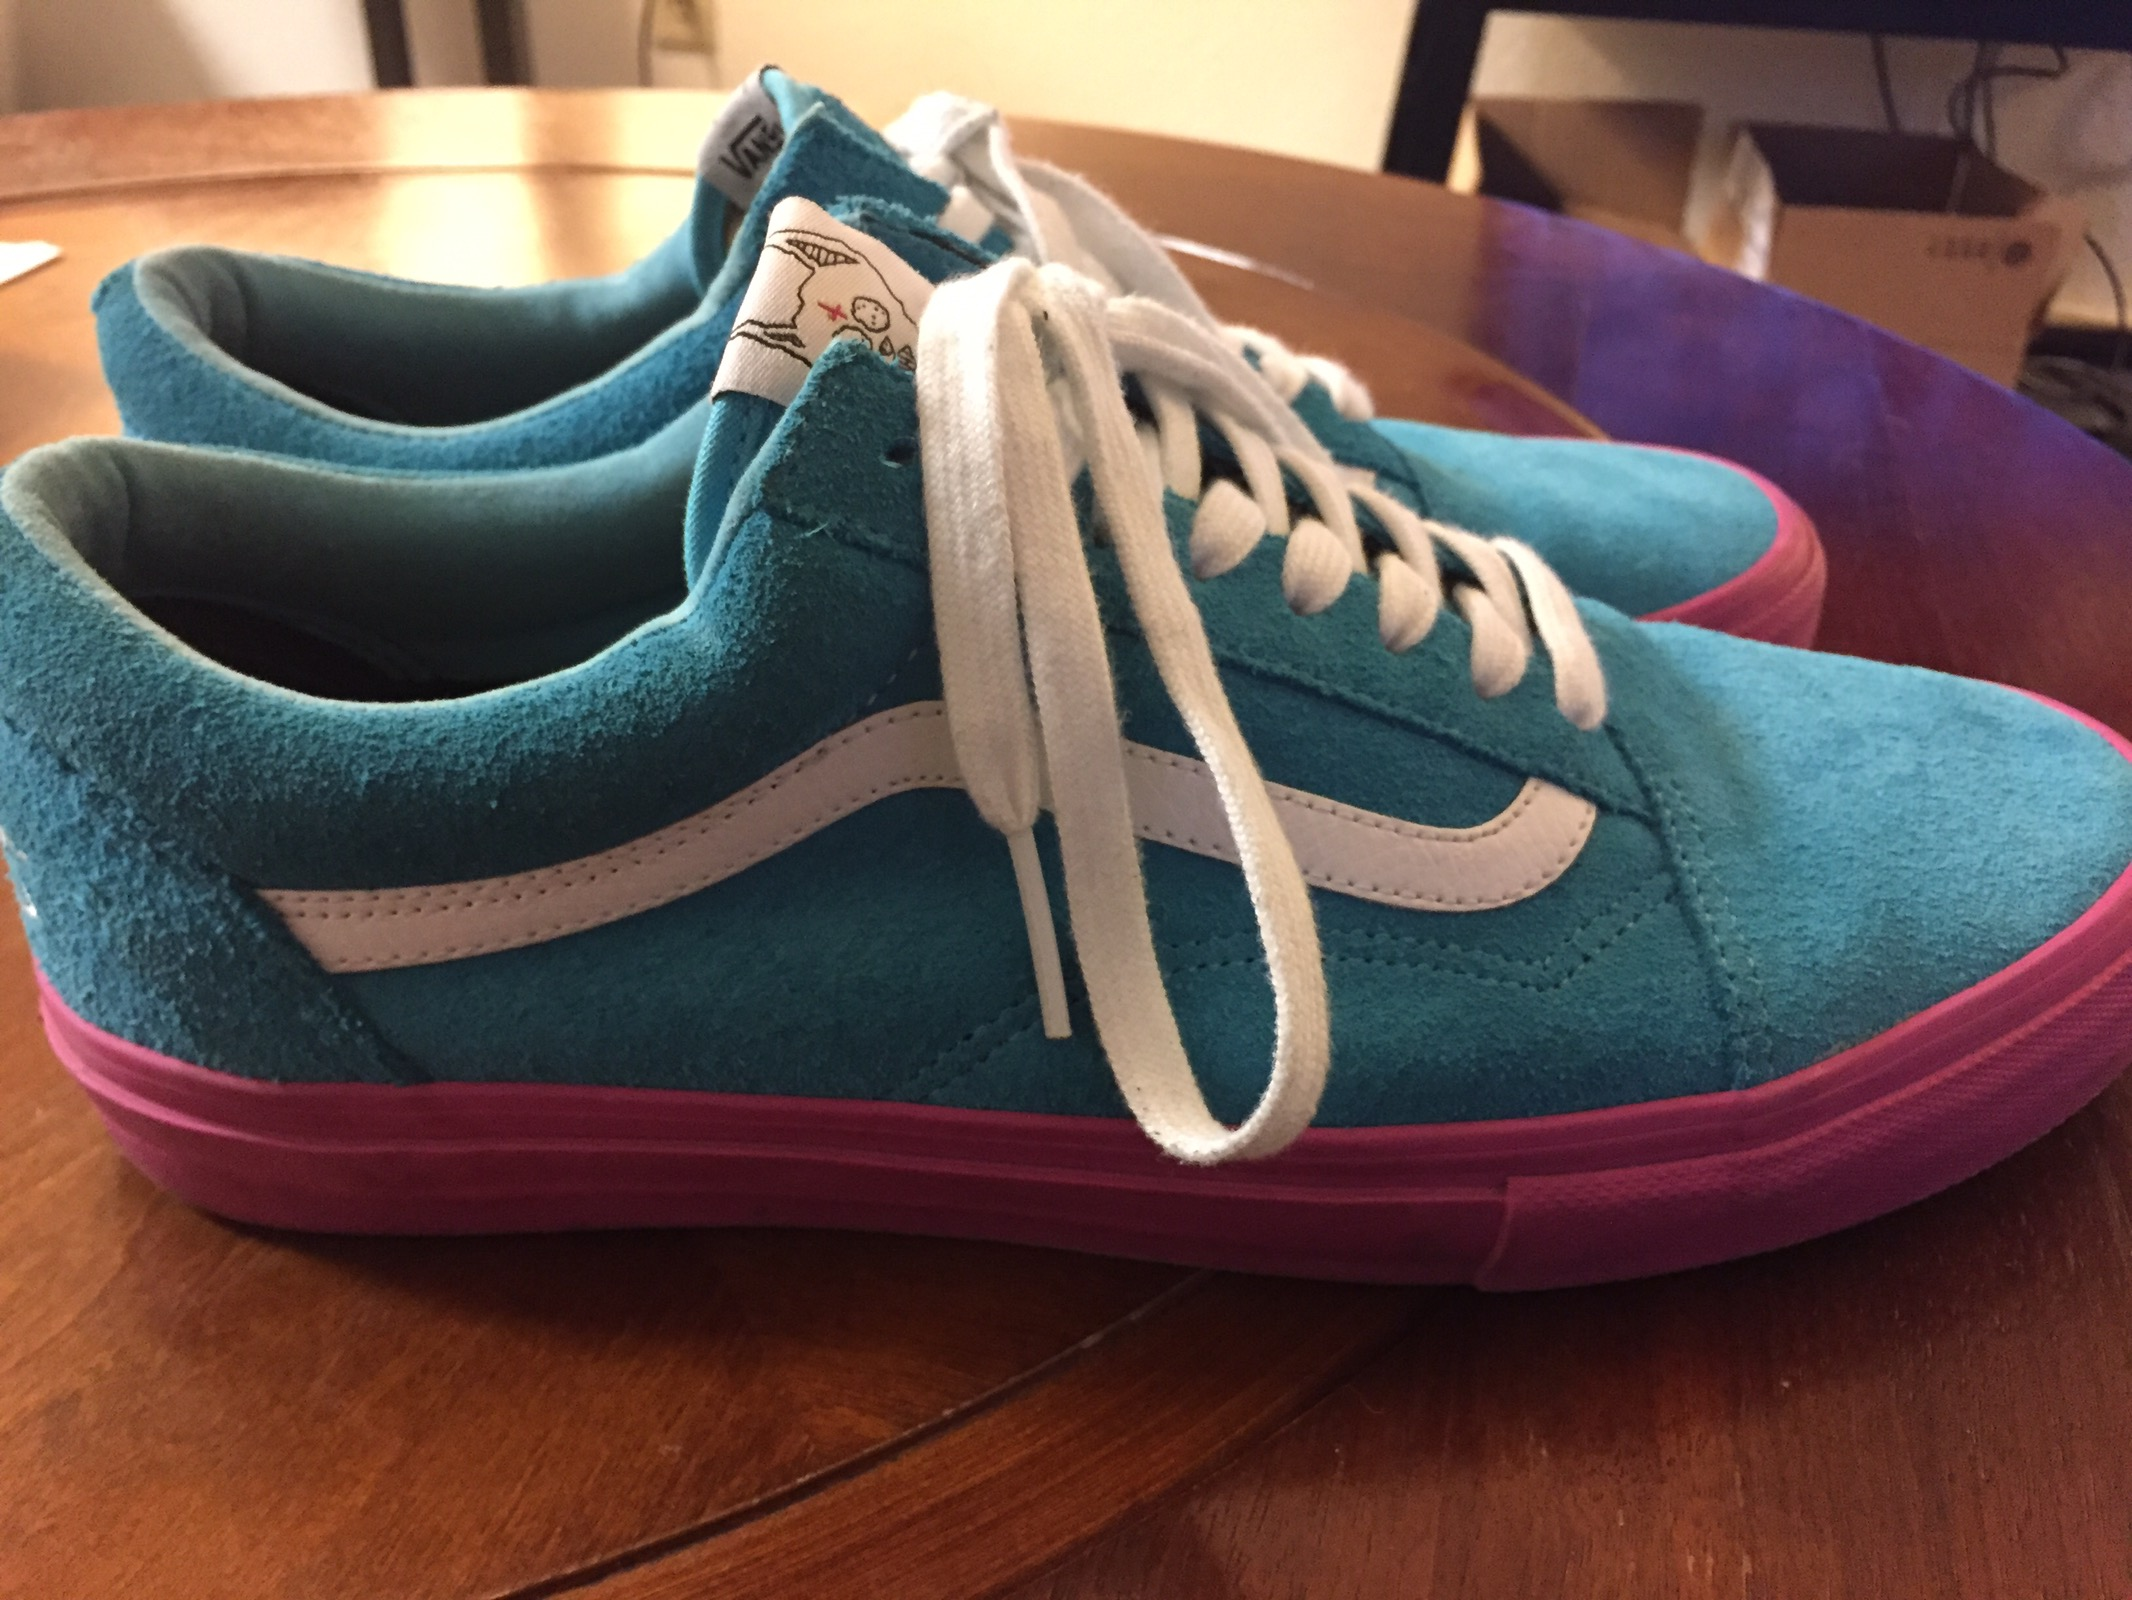 fdcd0c198001 Vans Golf Wang Syndicate Vans Size 10.5 - Low-Top Sneakers for Sale -  Grailed